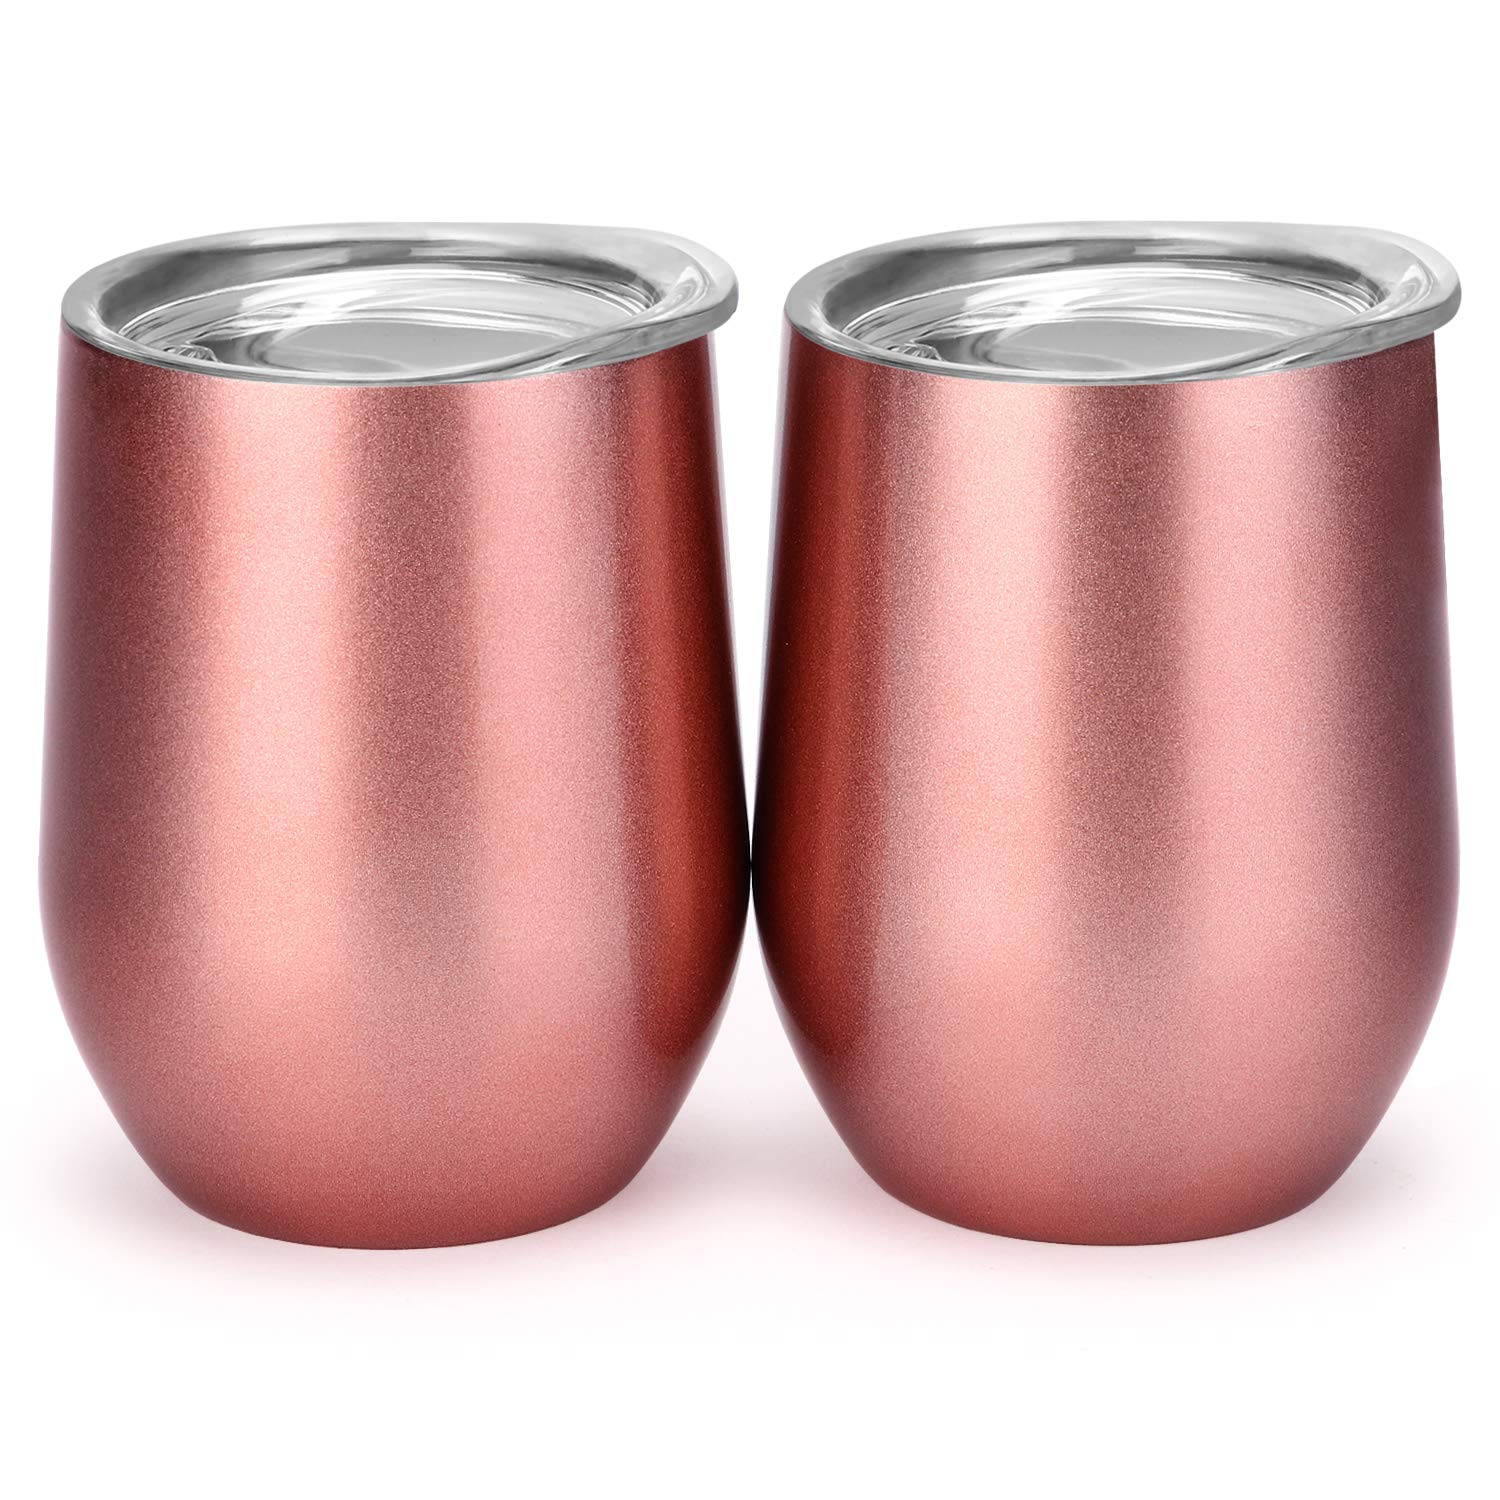 12 oz Double-insulated Stemless Glass, Stainless Steel Tumbler Cup with Lids for Wine, Coffee, Drinks, Champagne, Cocktails, 2 Sets (Rose Gold)